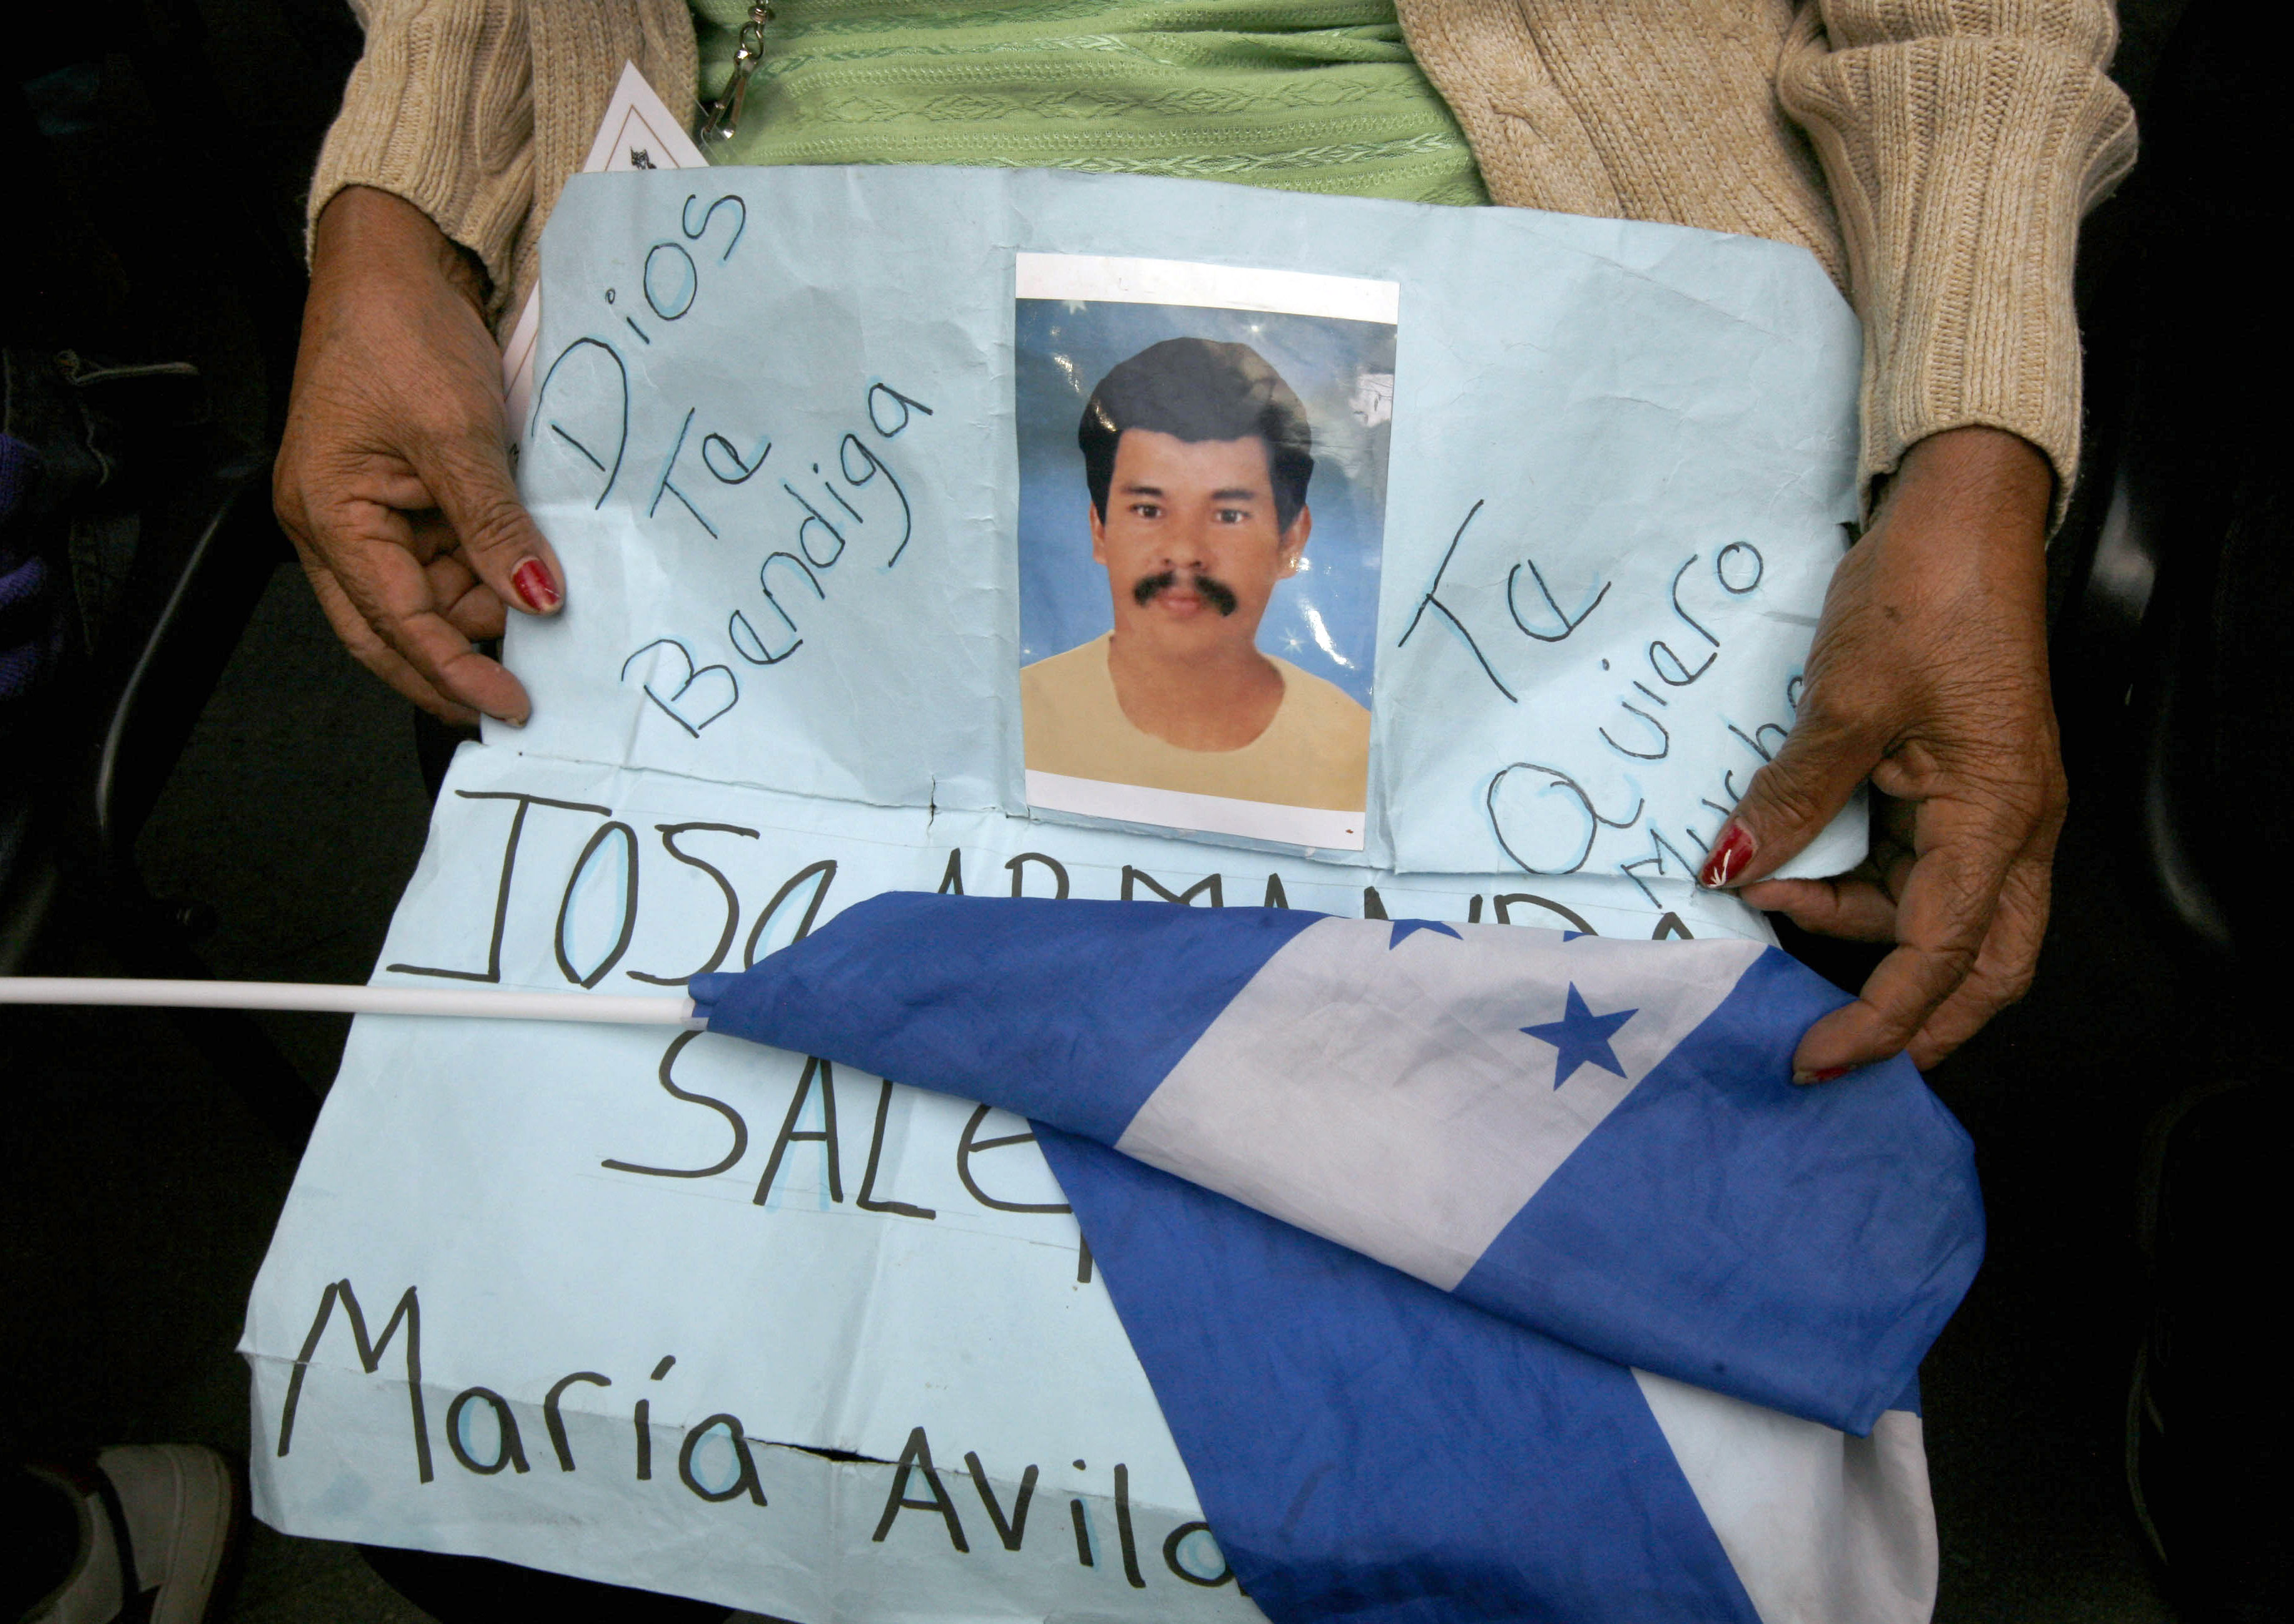 Migrant Maria Avila holds a sign with an image of his missing son, Jose Salgado Avila and a Honduran flag in Mexico City, Monday, Aug. 1, 2011. Hundreds of Central American relatives of dead or missing migrants traveled to Mexico CIty in an effort to pressure Mexican authorities to do more to guarantee the human rights of migrants traveling north towards the United States. (AP Photo/ Marco Ugarte)